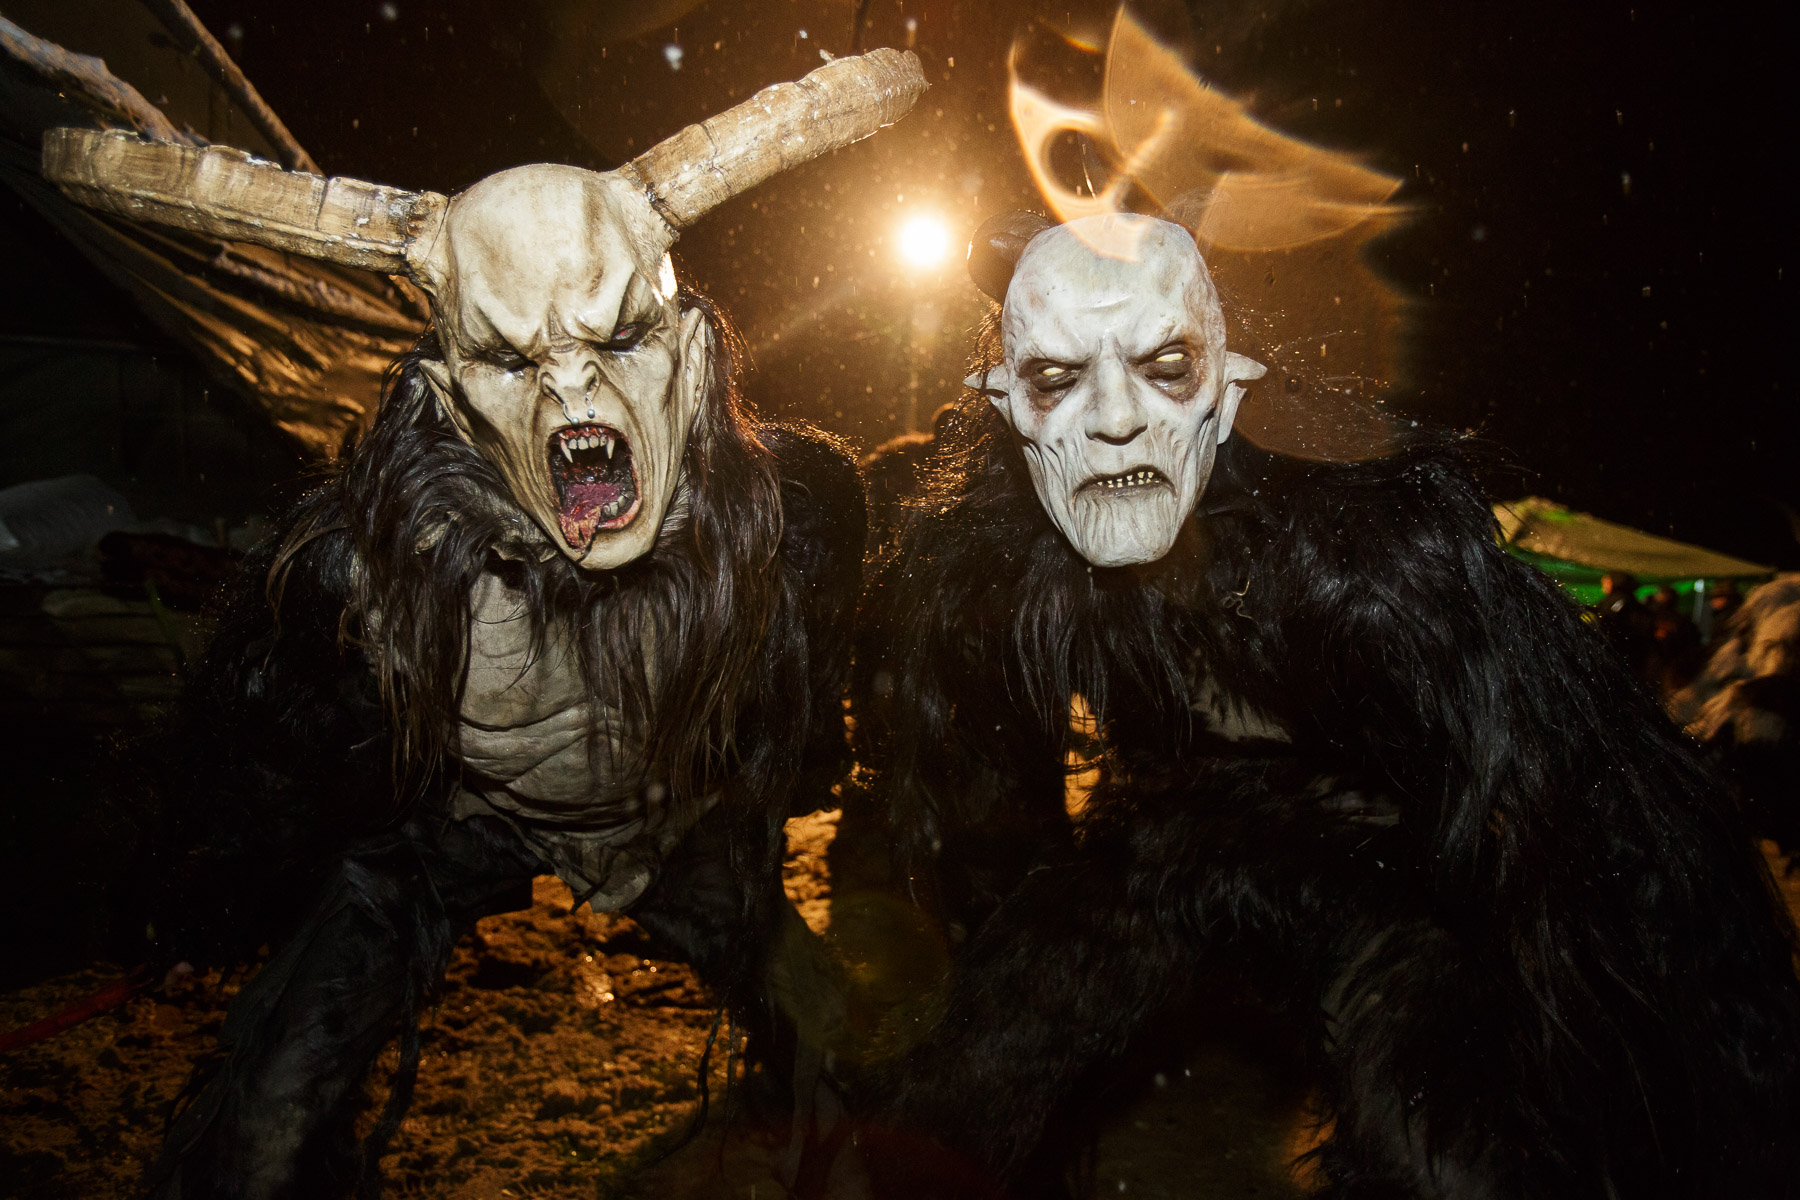 Participants dressed as Krampus creatures during the Krampus gathering in Goricane, Slovenia, Nov. 21, 2015. In Central European alpine folklore, Krampus is a demonic creature traditionally following St. Nicholas and angels on the evening of December 5. It pries on children who were not good during the year.